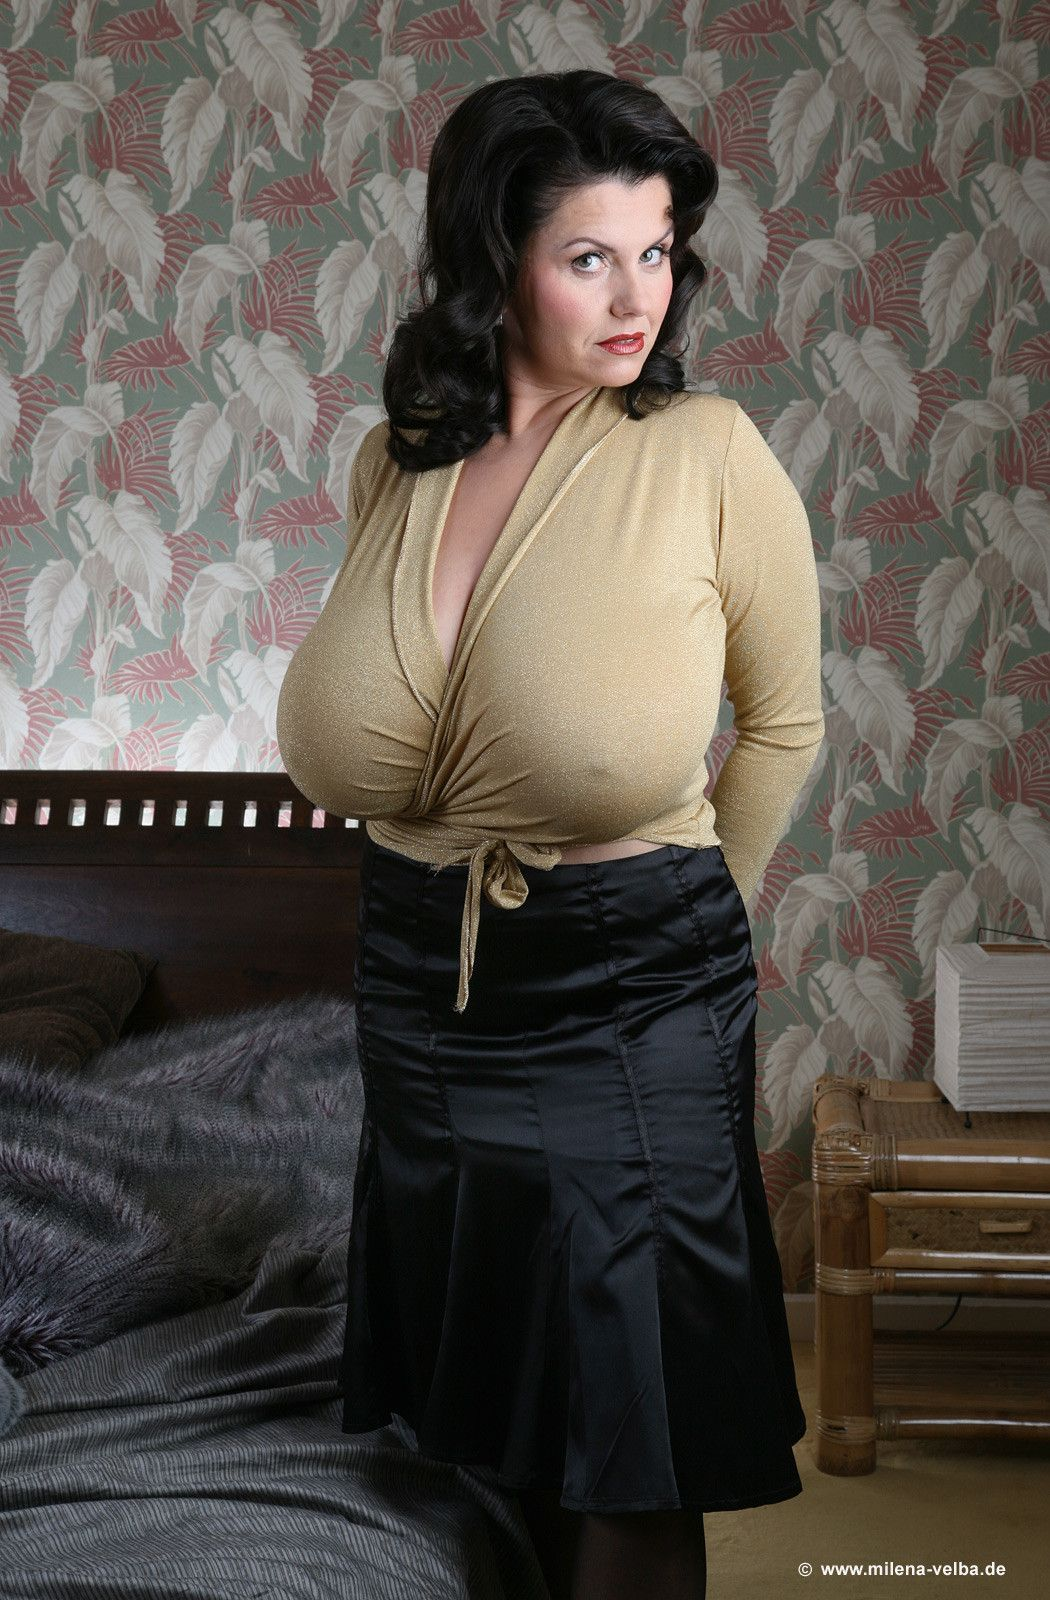 the beauty that is big women big boobs and mature | my fav | pinterest